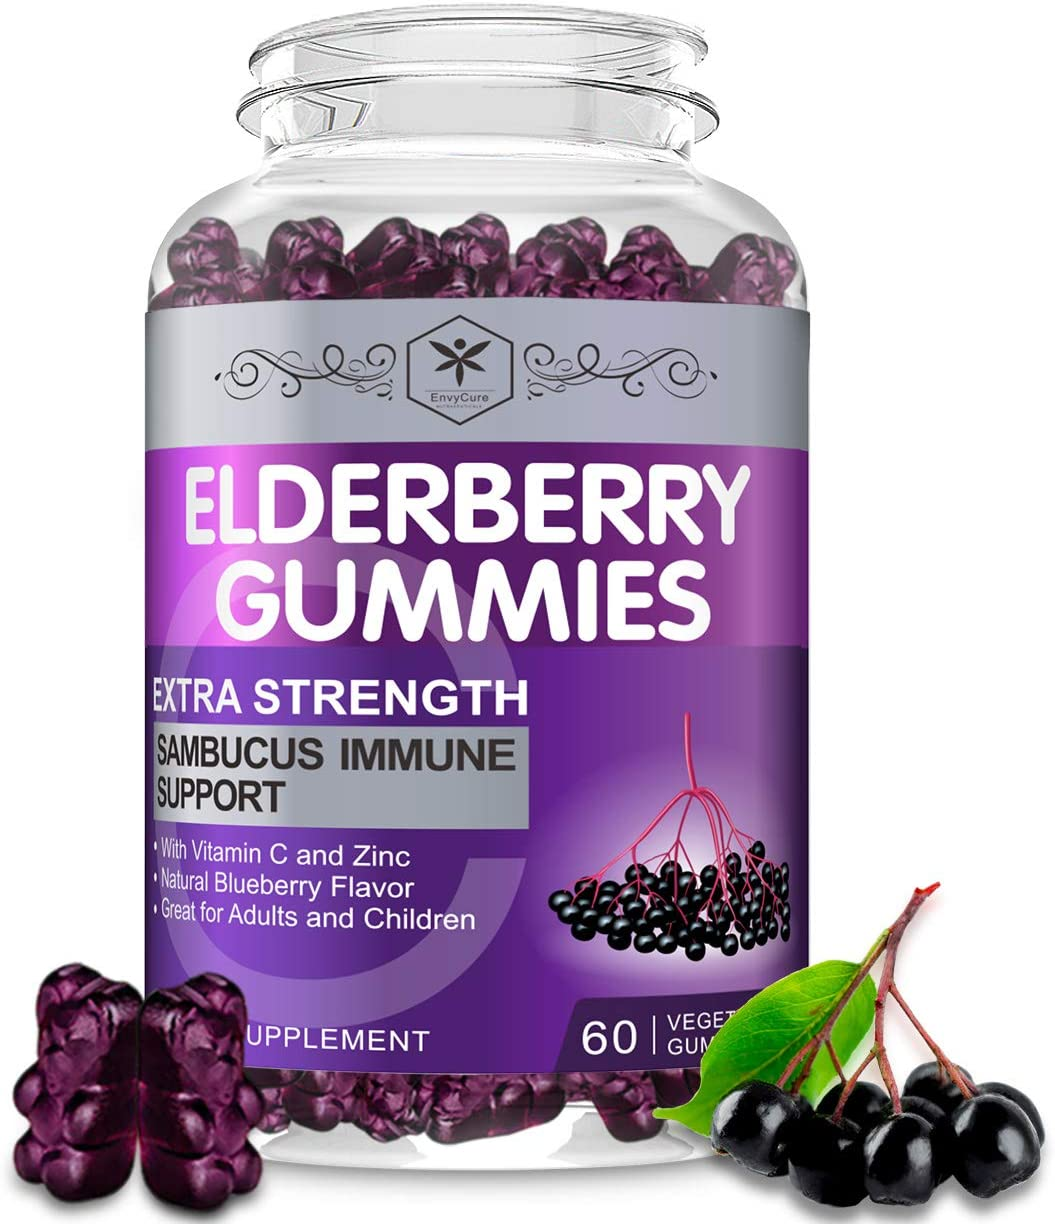 Sambucus Elderberry Gummies for Immune Support - Organic Black Elderberry Extract Gummy Herbal Supplements for Adults Kids